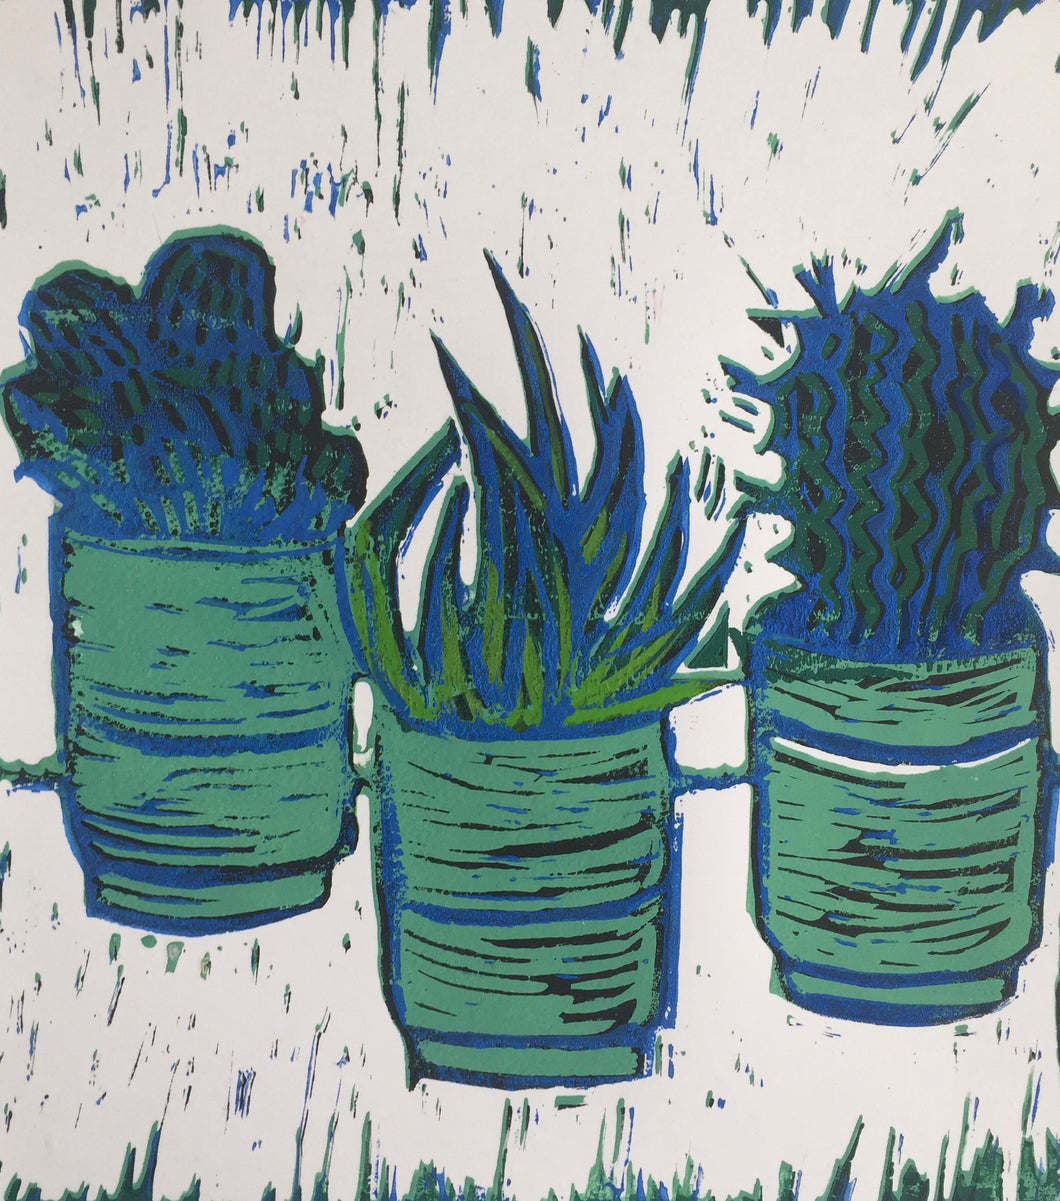 Cactus - potted plants III - green and blue